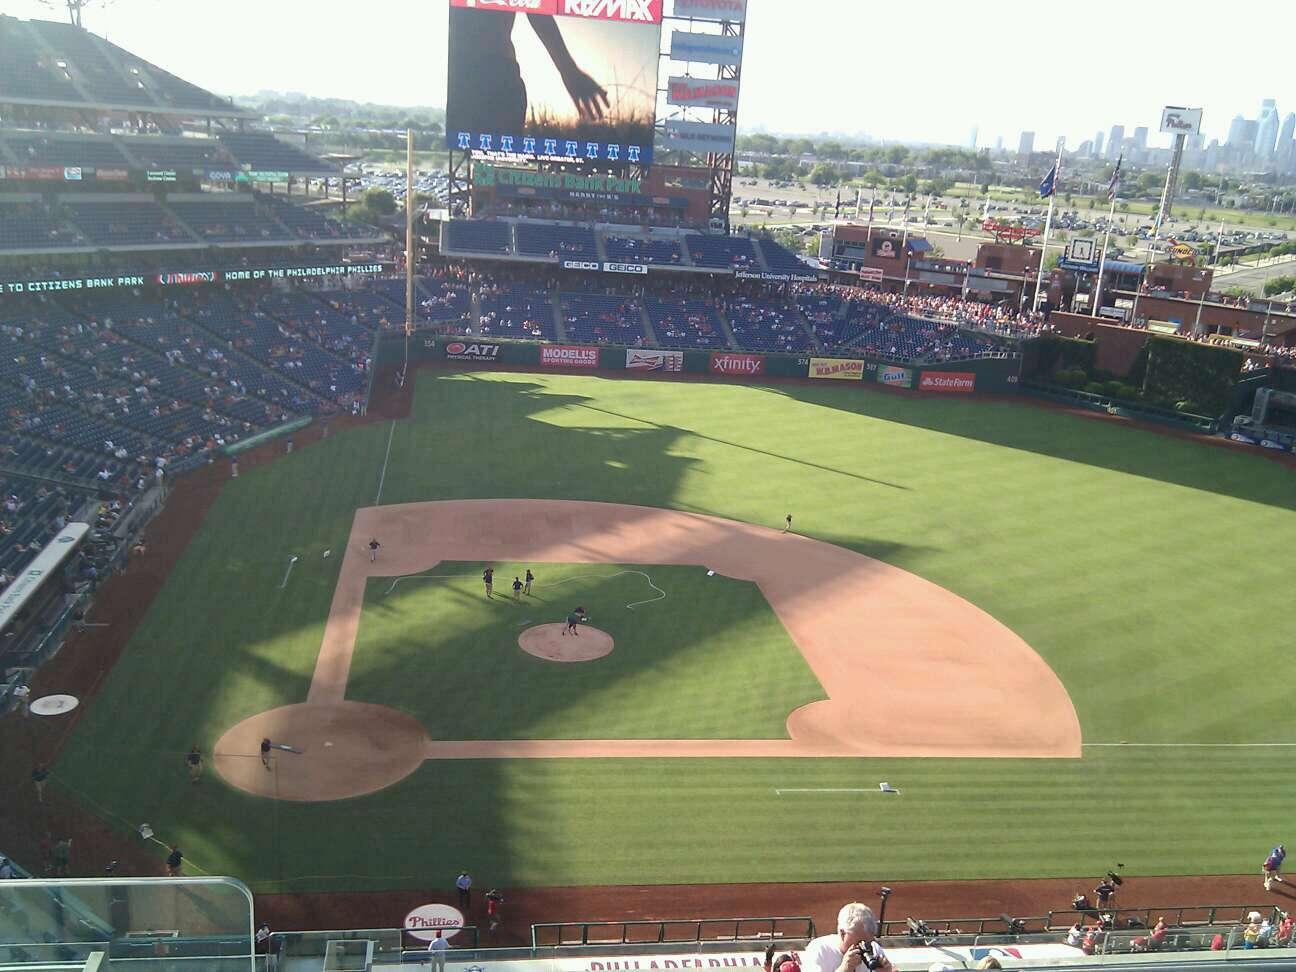 Citizens Bank Park Section 416 Row 3 Seat 24